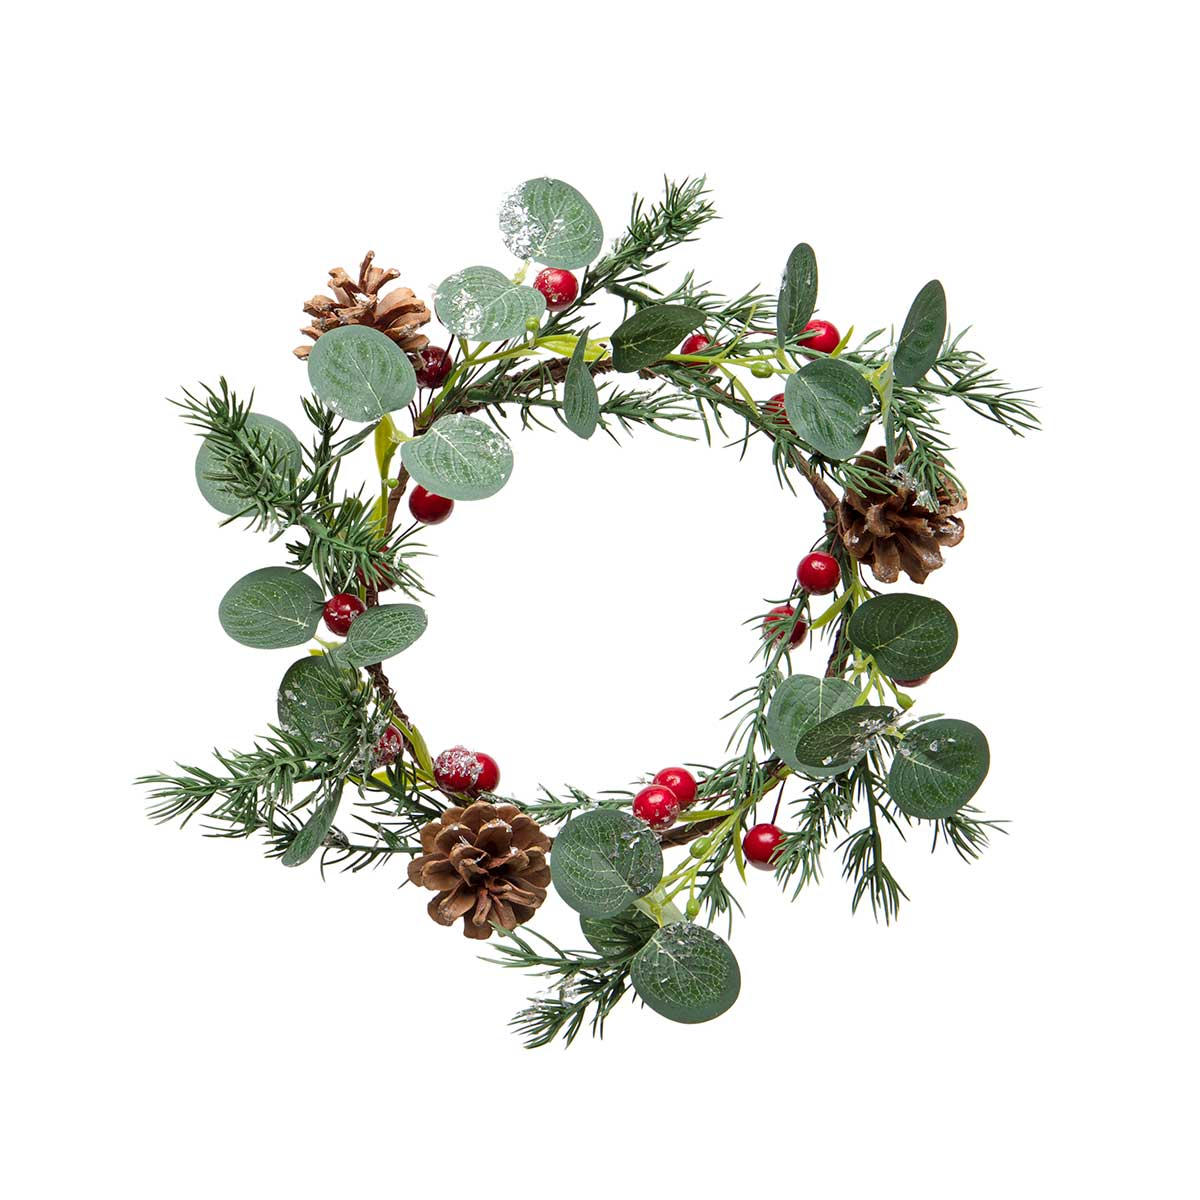 DECEMBER PINE WREATH WITH RED BERRIES, EUCALYPTUS, MICA